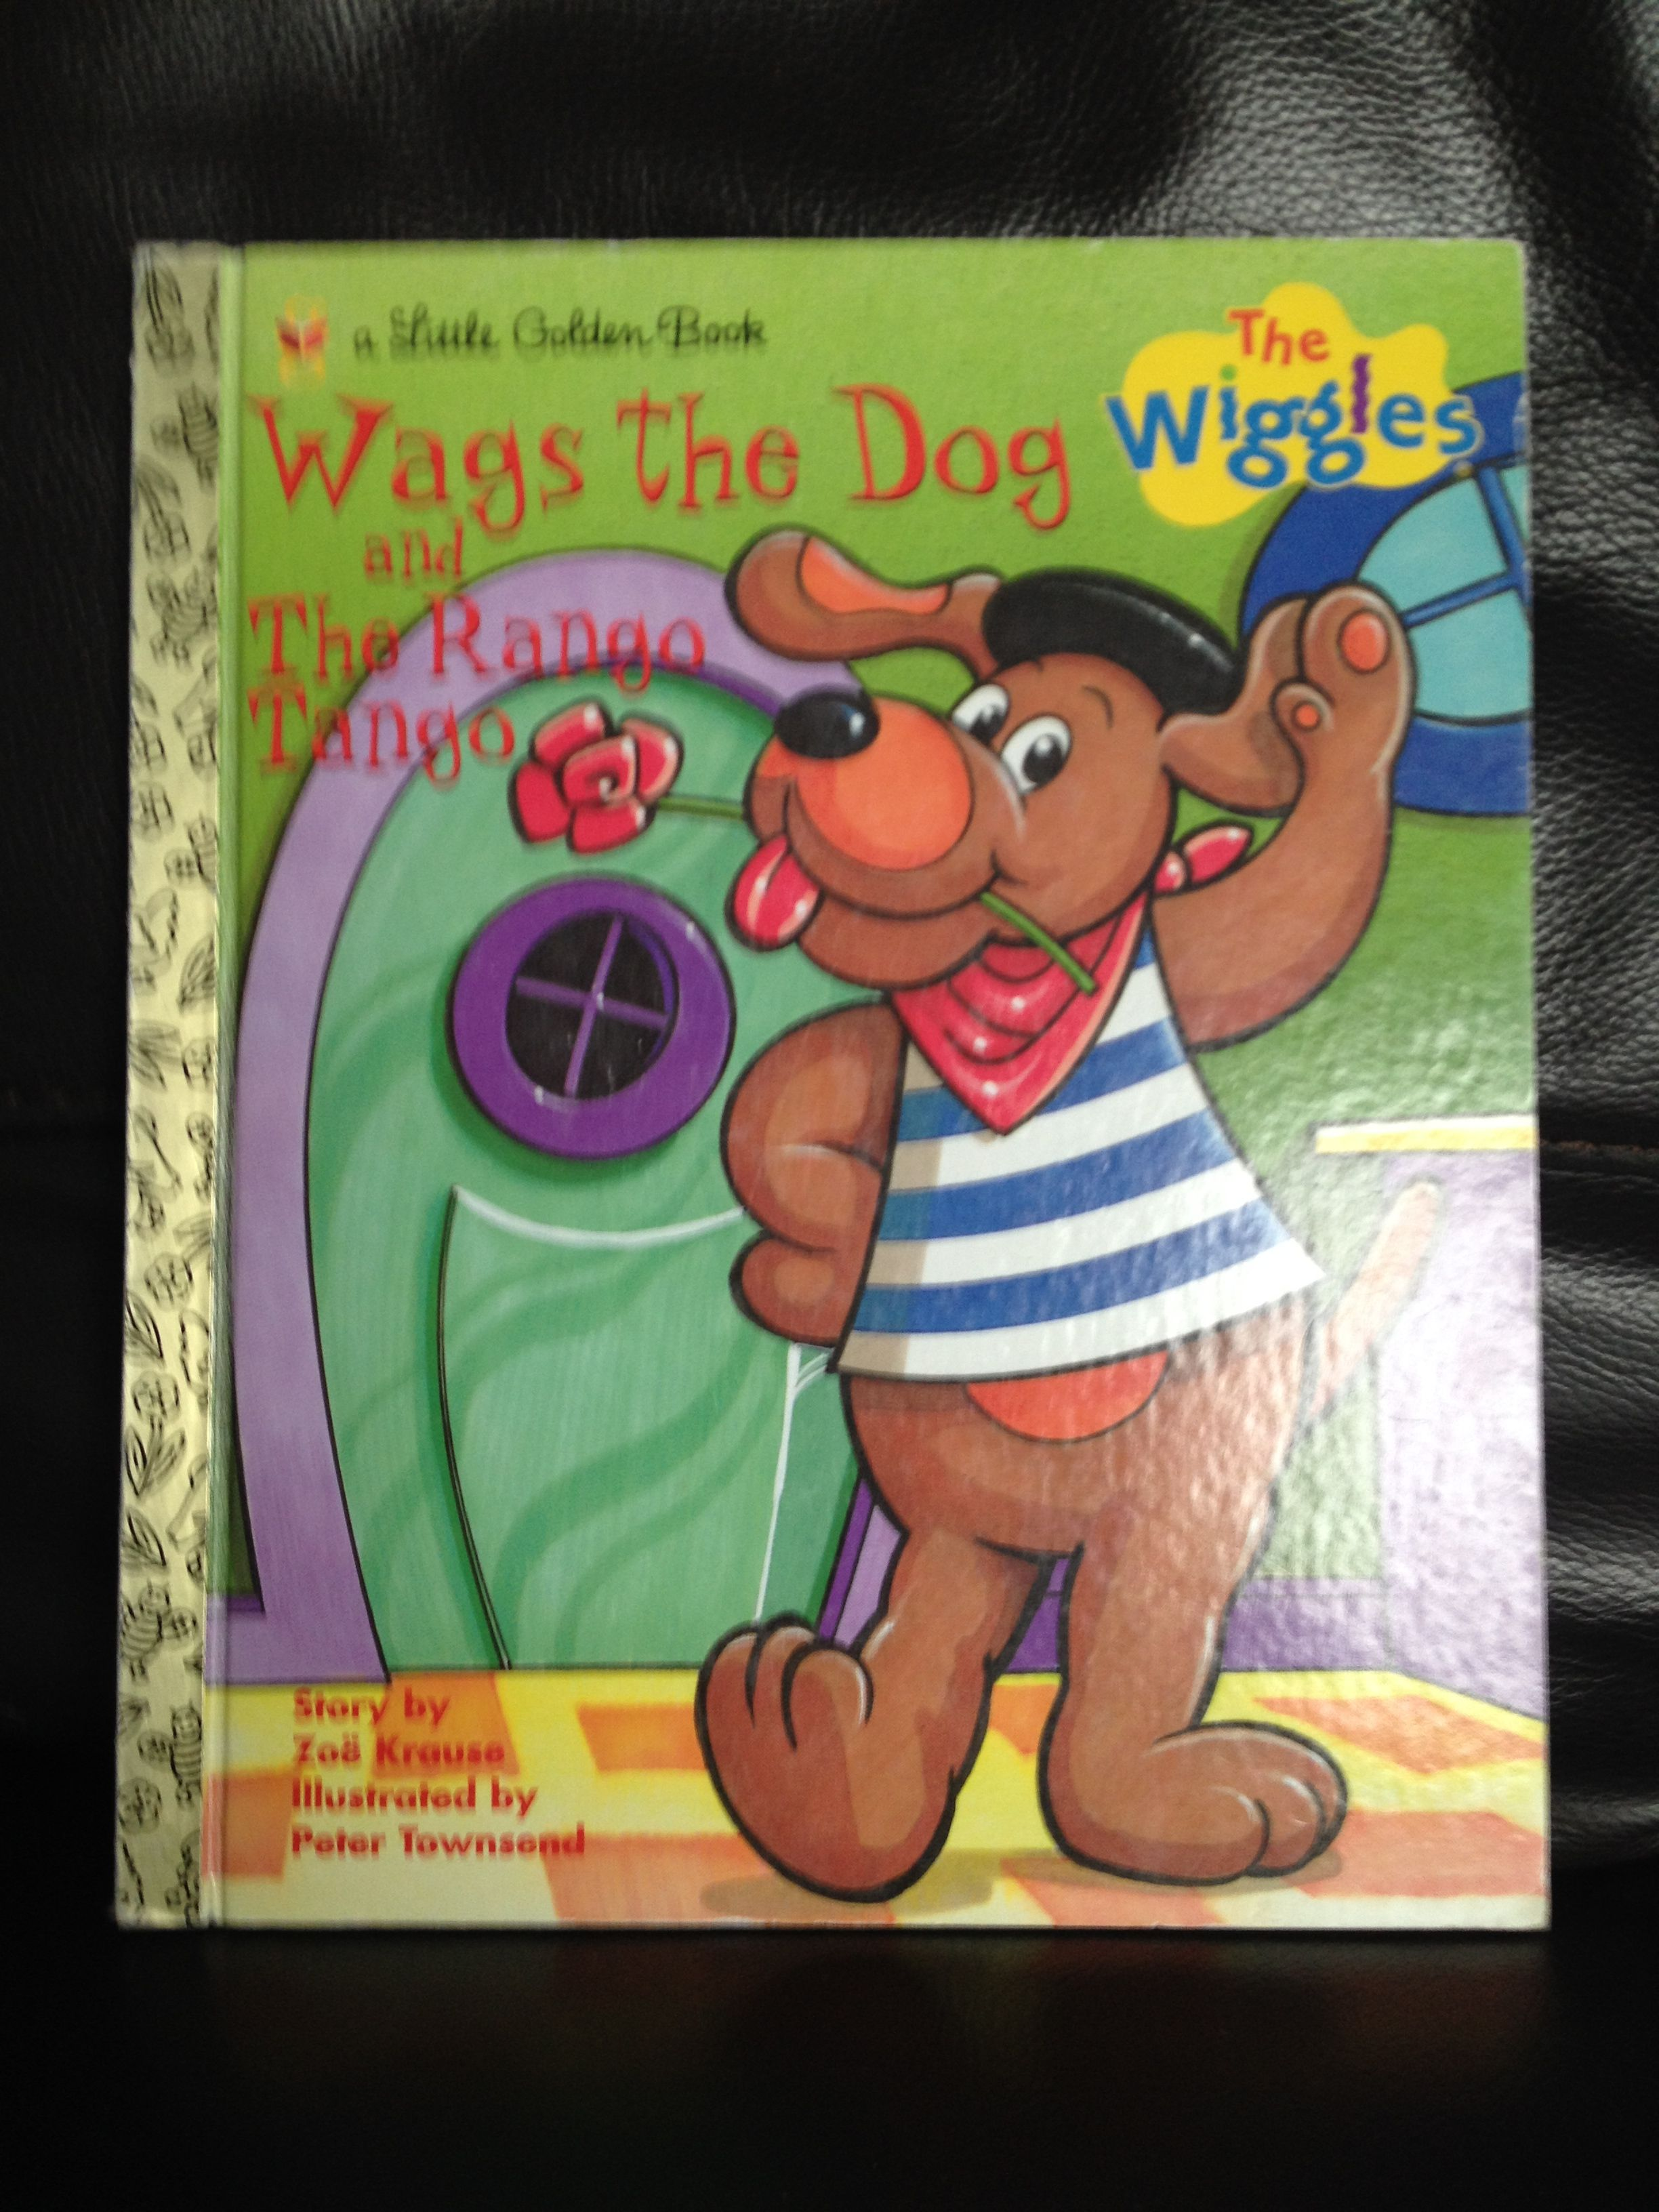 wags the dog the wiggles w little golden books wags the dog the wiggles